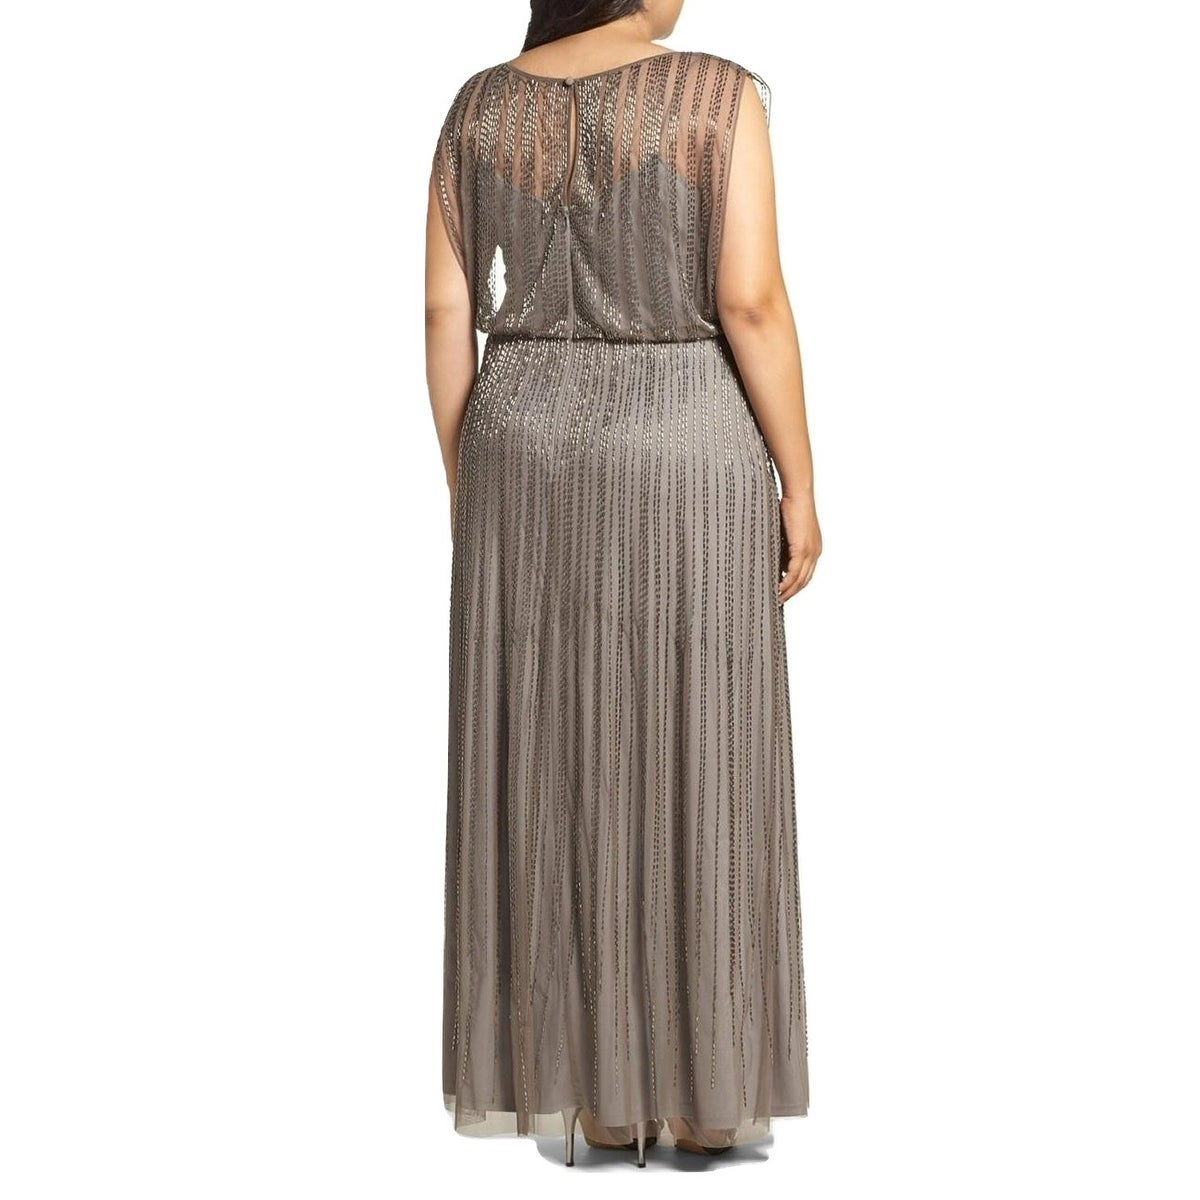 Shop Adrianna Papell Plus Size Beaded Illusion Blouson Evening Gown ...